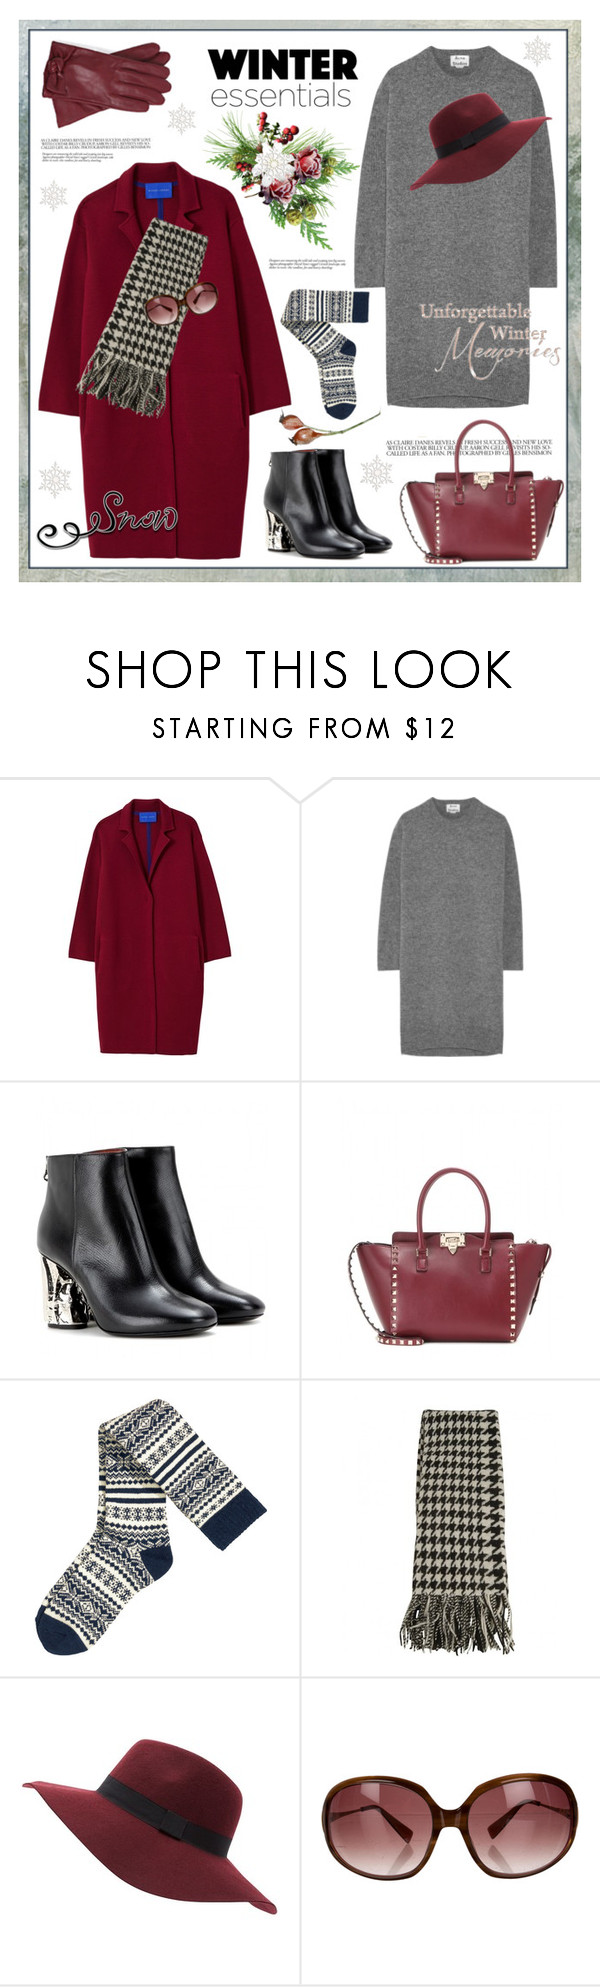 """Winter essentials"" by anne-irene ❤ liked on Polyvore featuring Winser London, Acne Studios, Jill Stuart, Valentino, H&M, Barbour and Oliver Peoples"